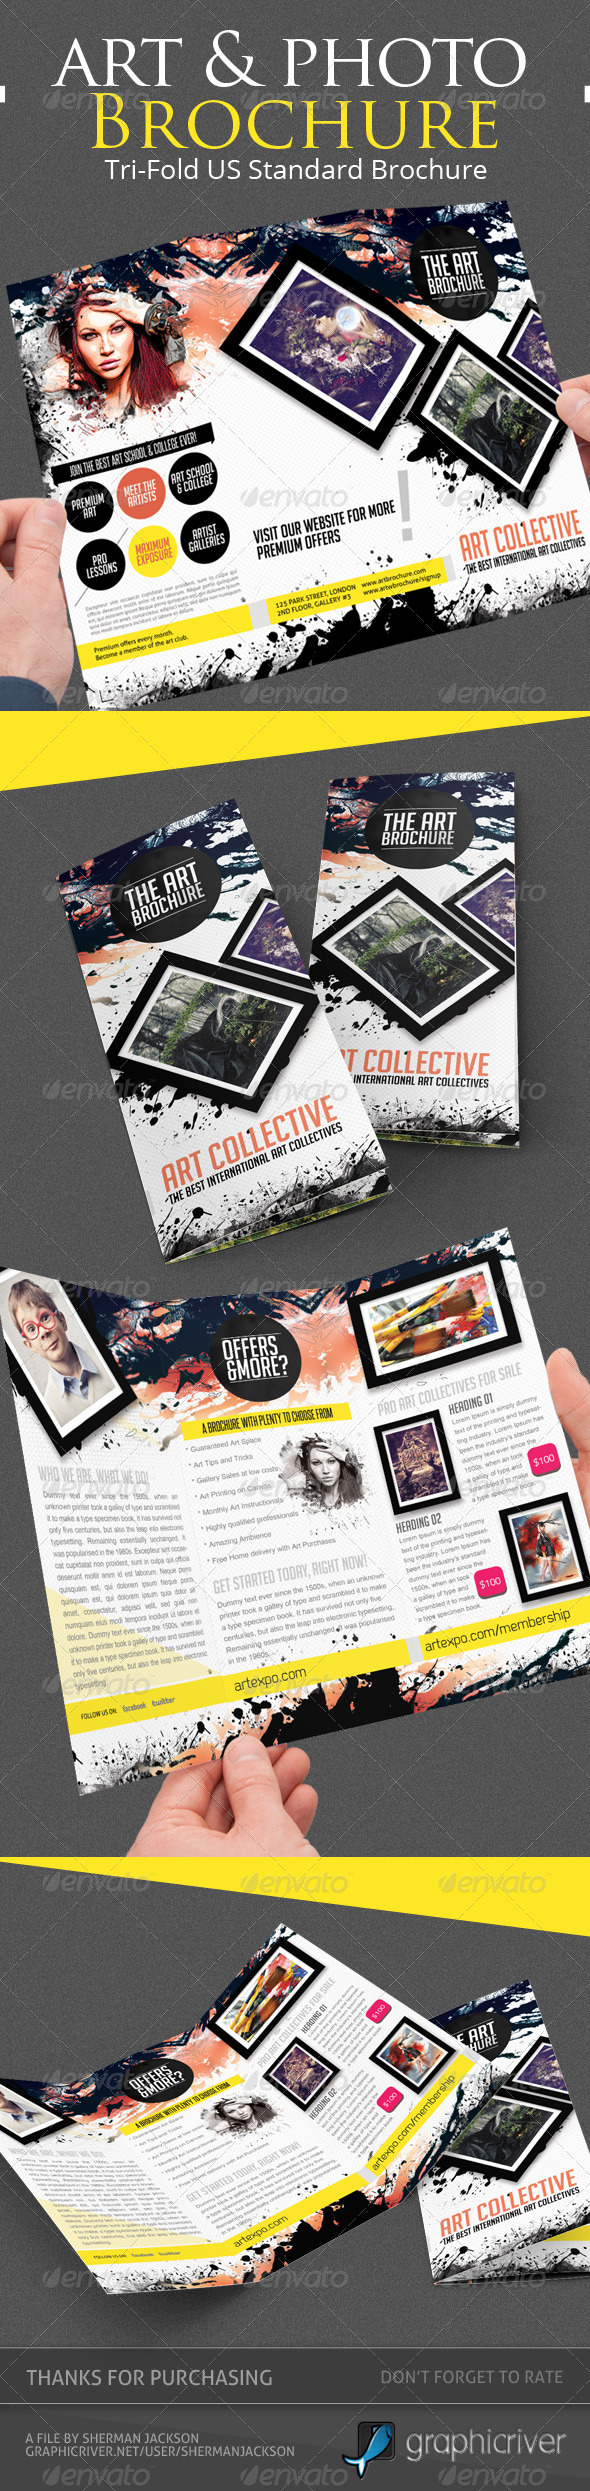 GraphicRiver Art & Photo Tri-fold Brochure Template 4162563